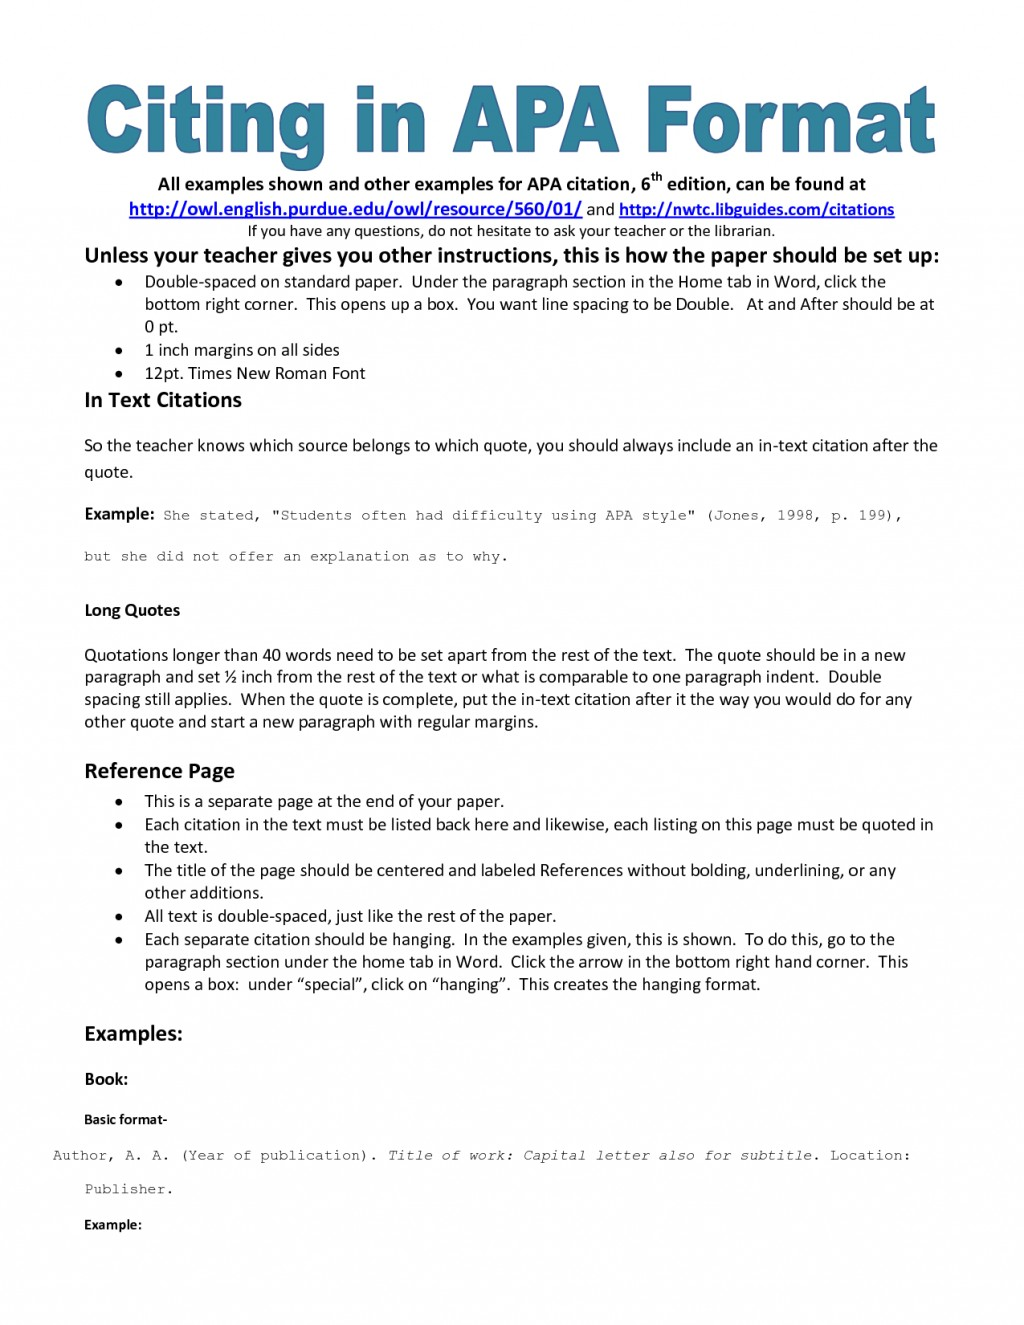 001 Apa Citation Research Paper Format Remarkable Style Model Large